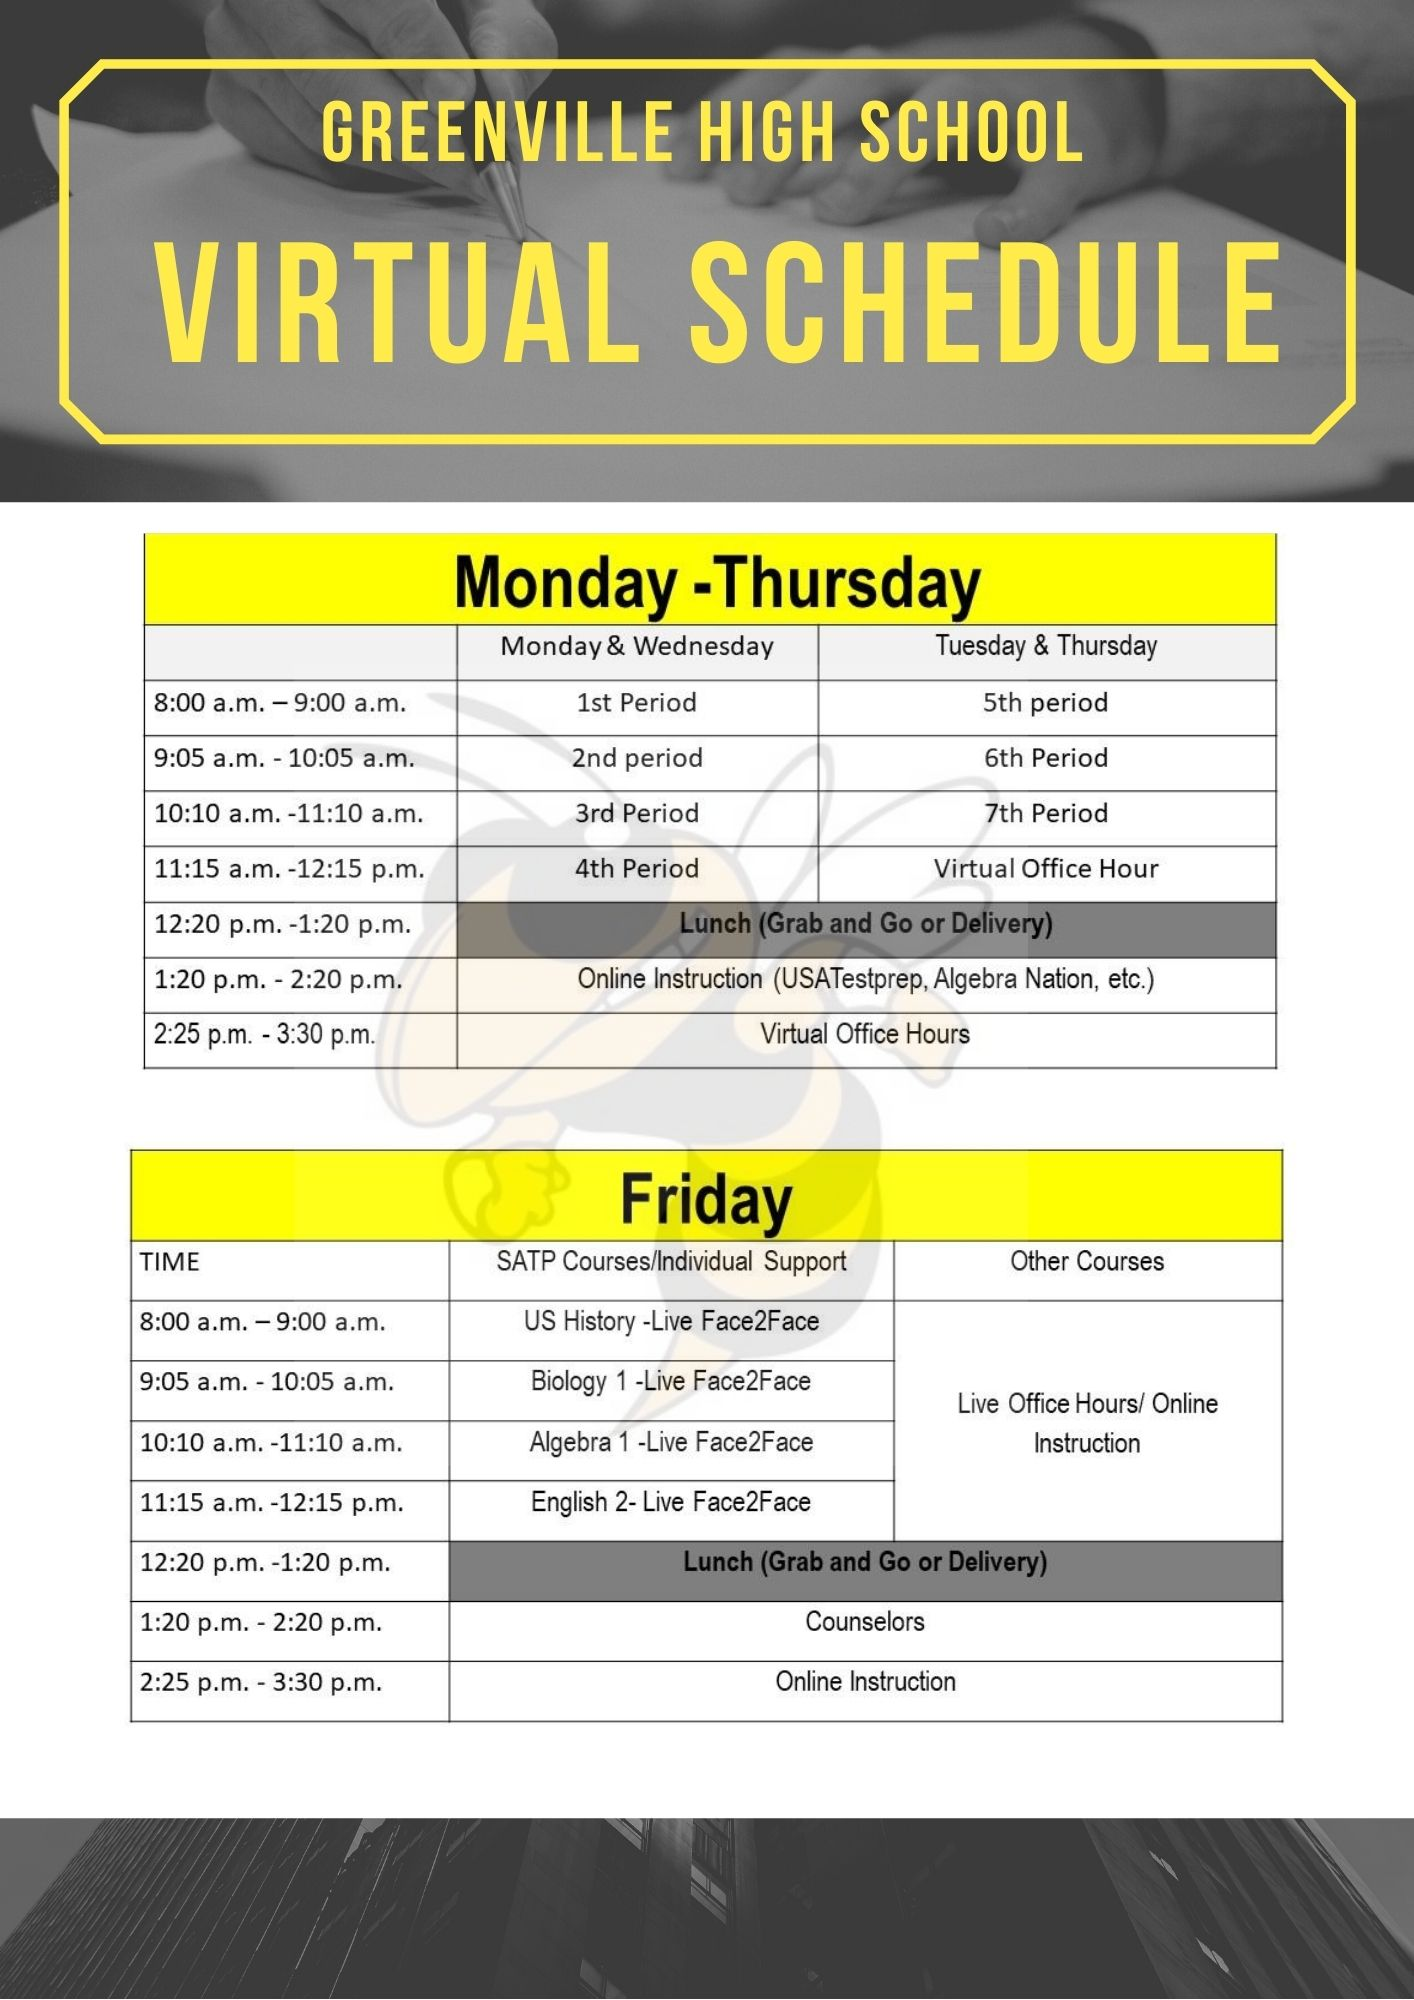 GHS Daily Virtual Schedule